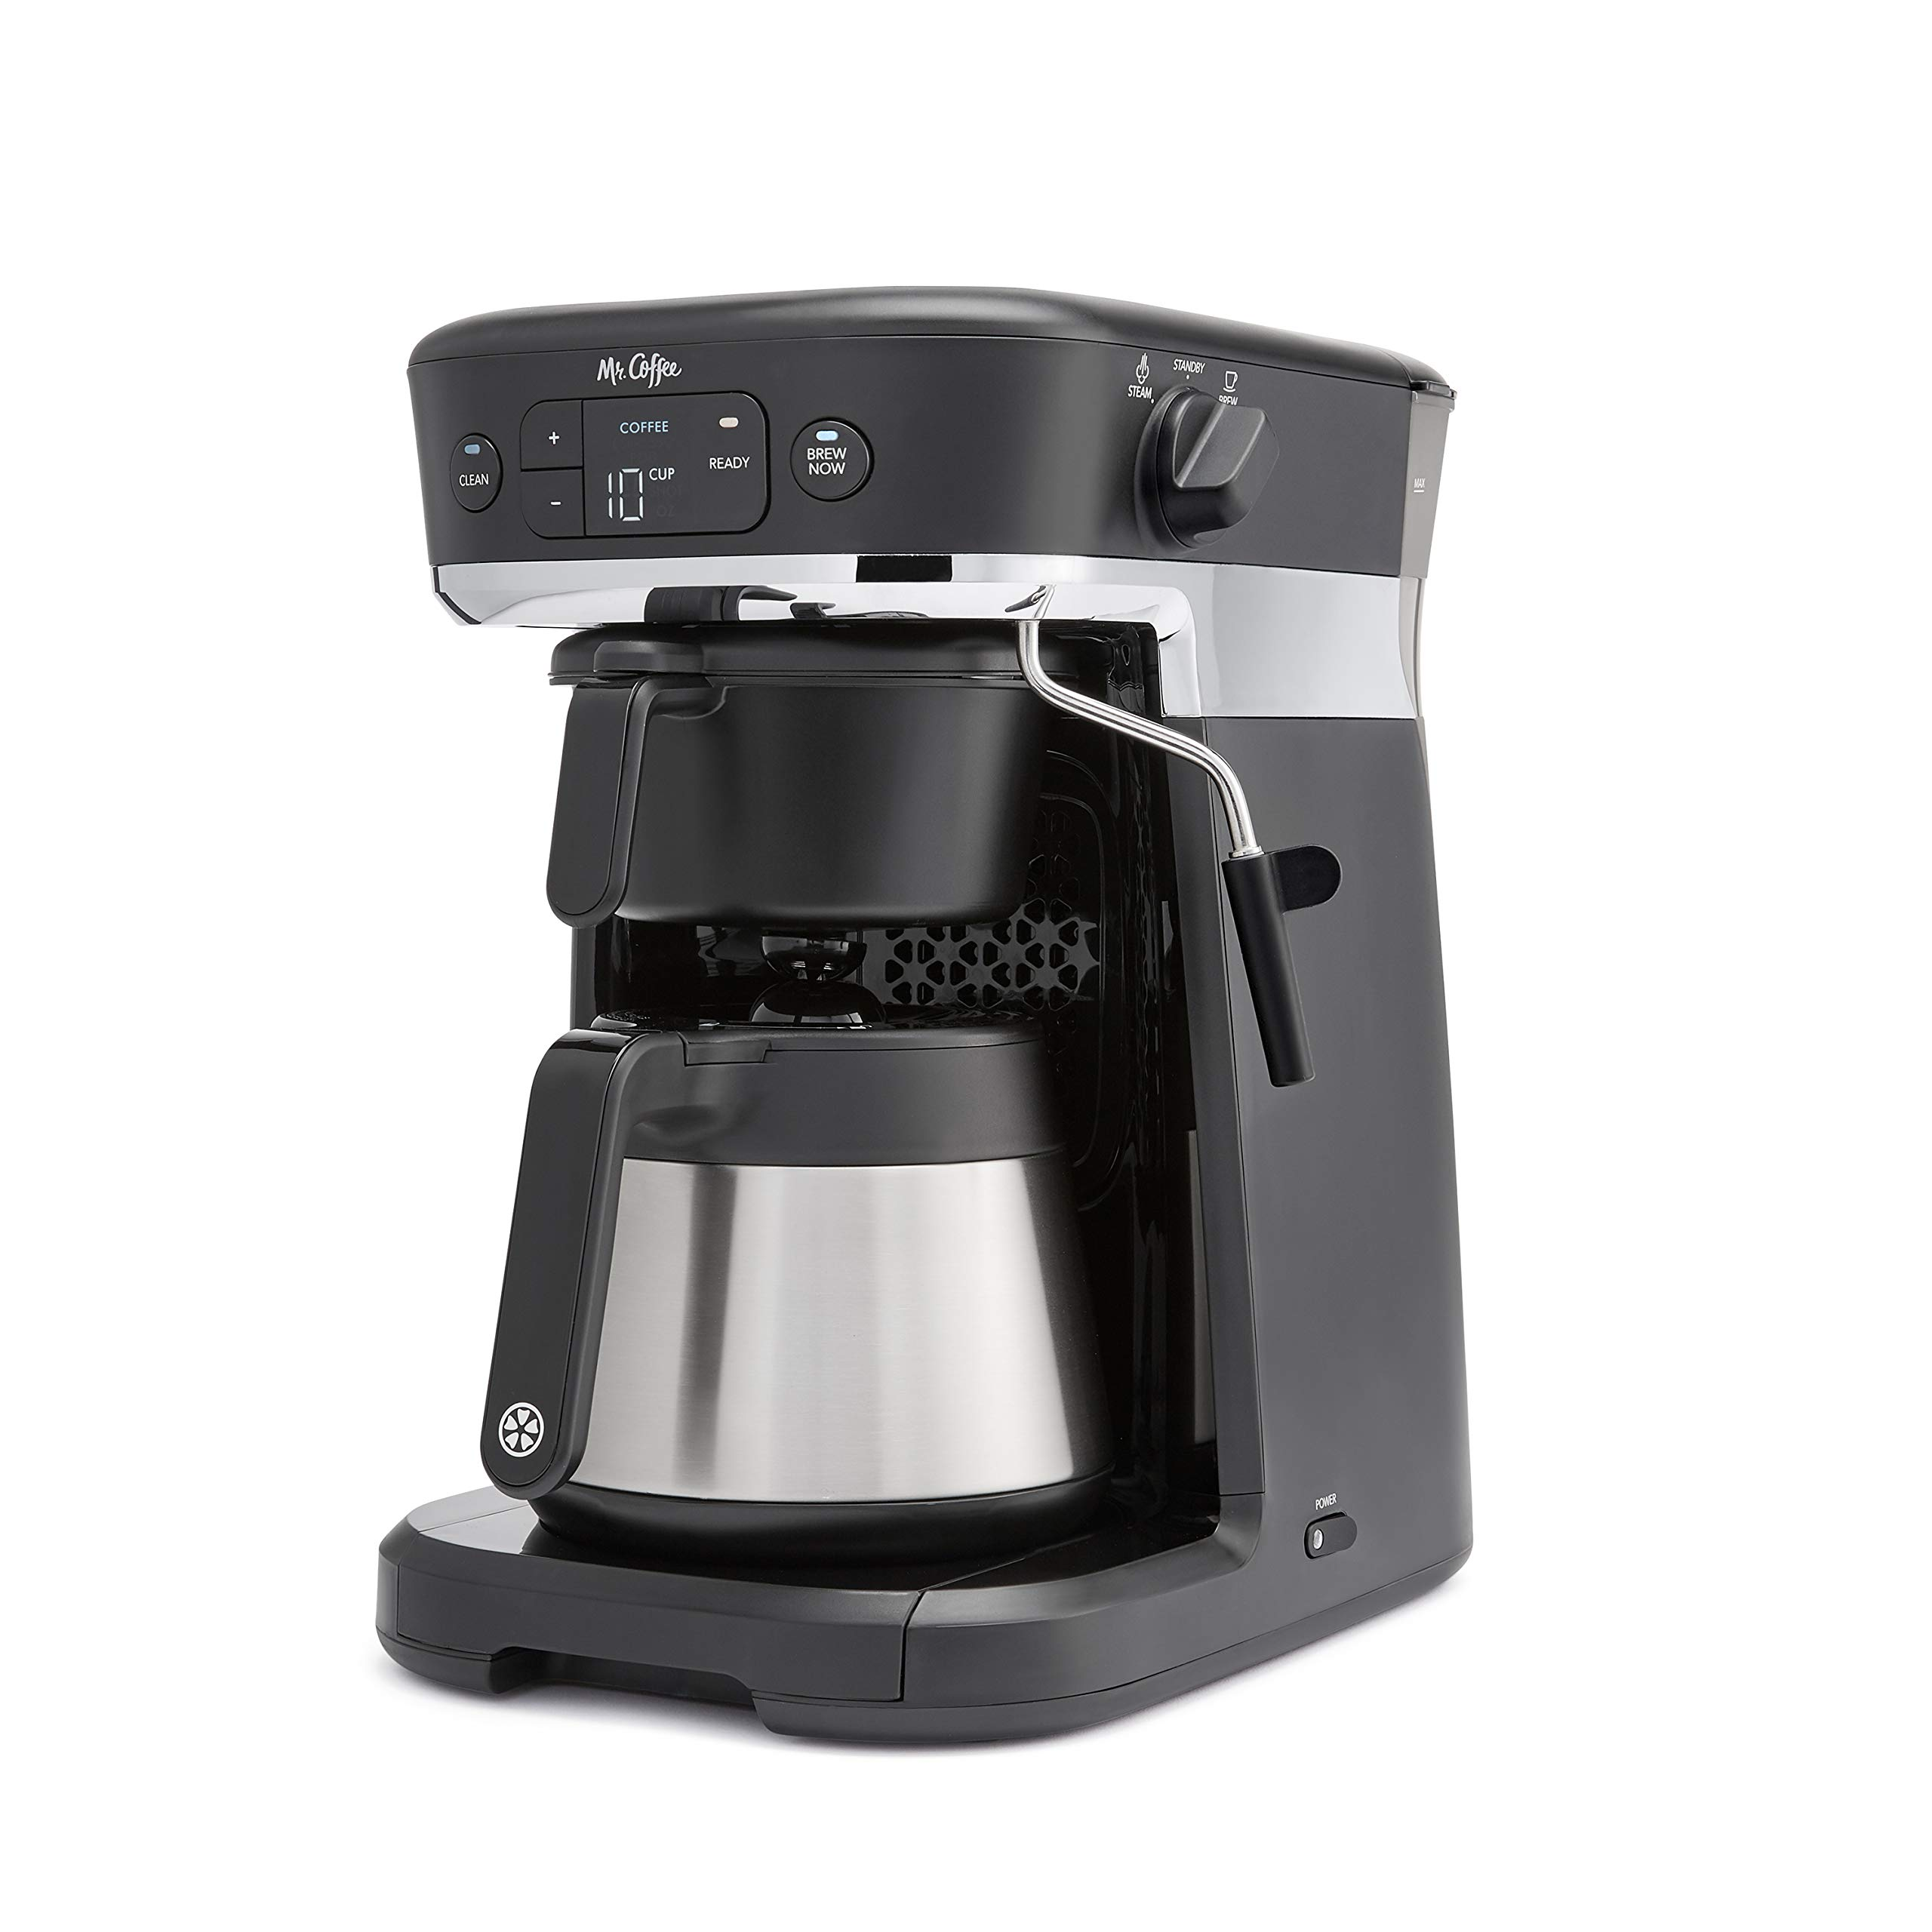 Mr. Coffee Occasions Coffee Maker   Thermal Carafe, Single Serve, Espresso & More   with Storage Tray, Black/Chrome by Mr. Coffee